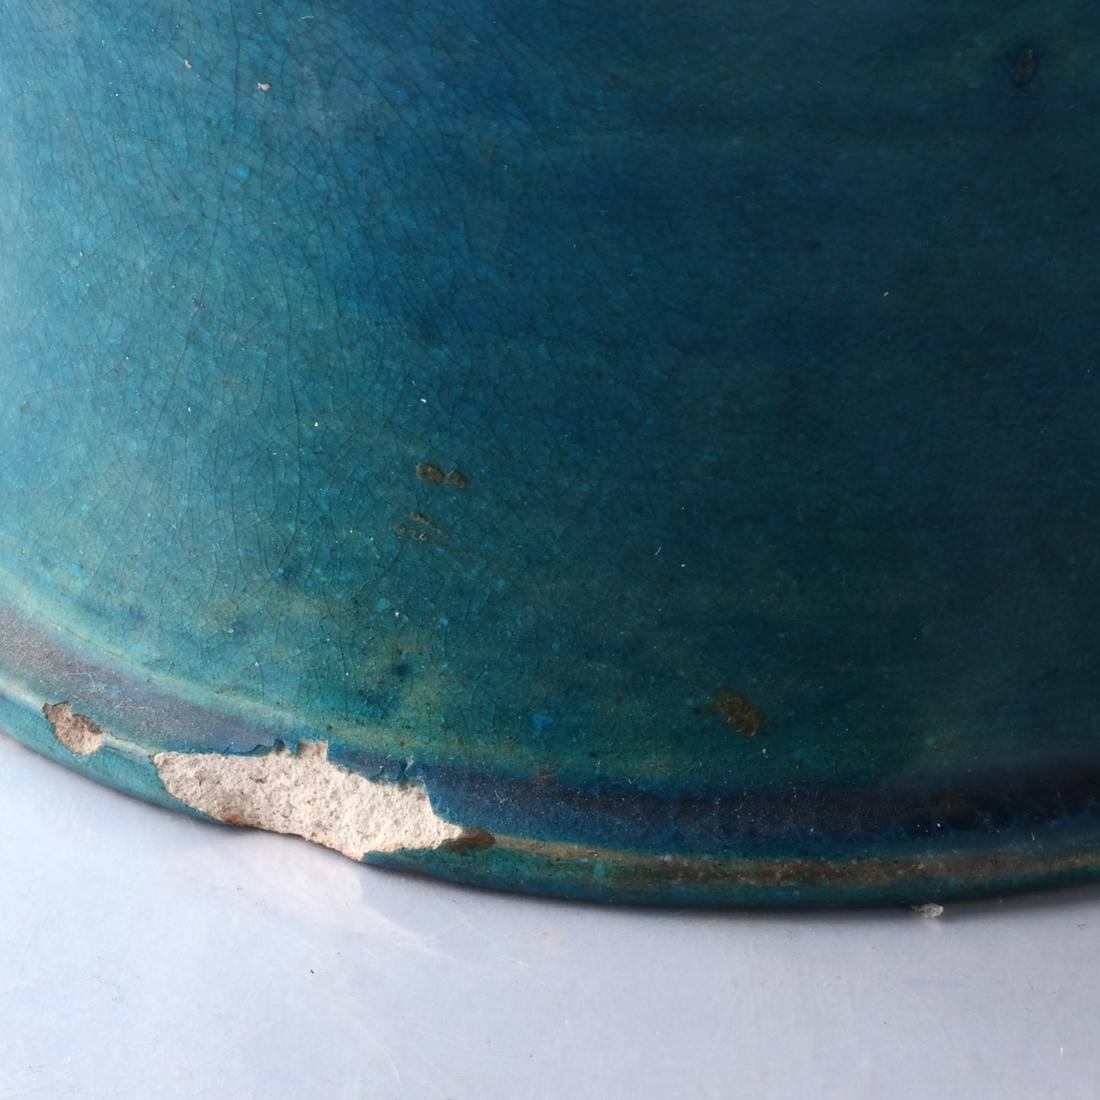 Chinese Ceramic Jar, Turquoise Colored - 3